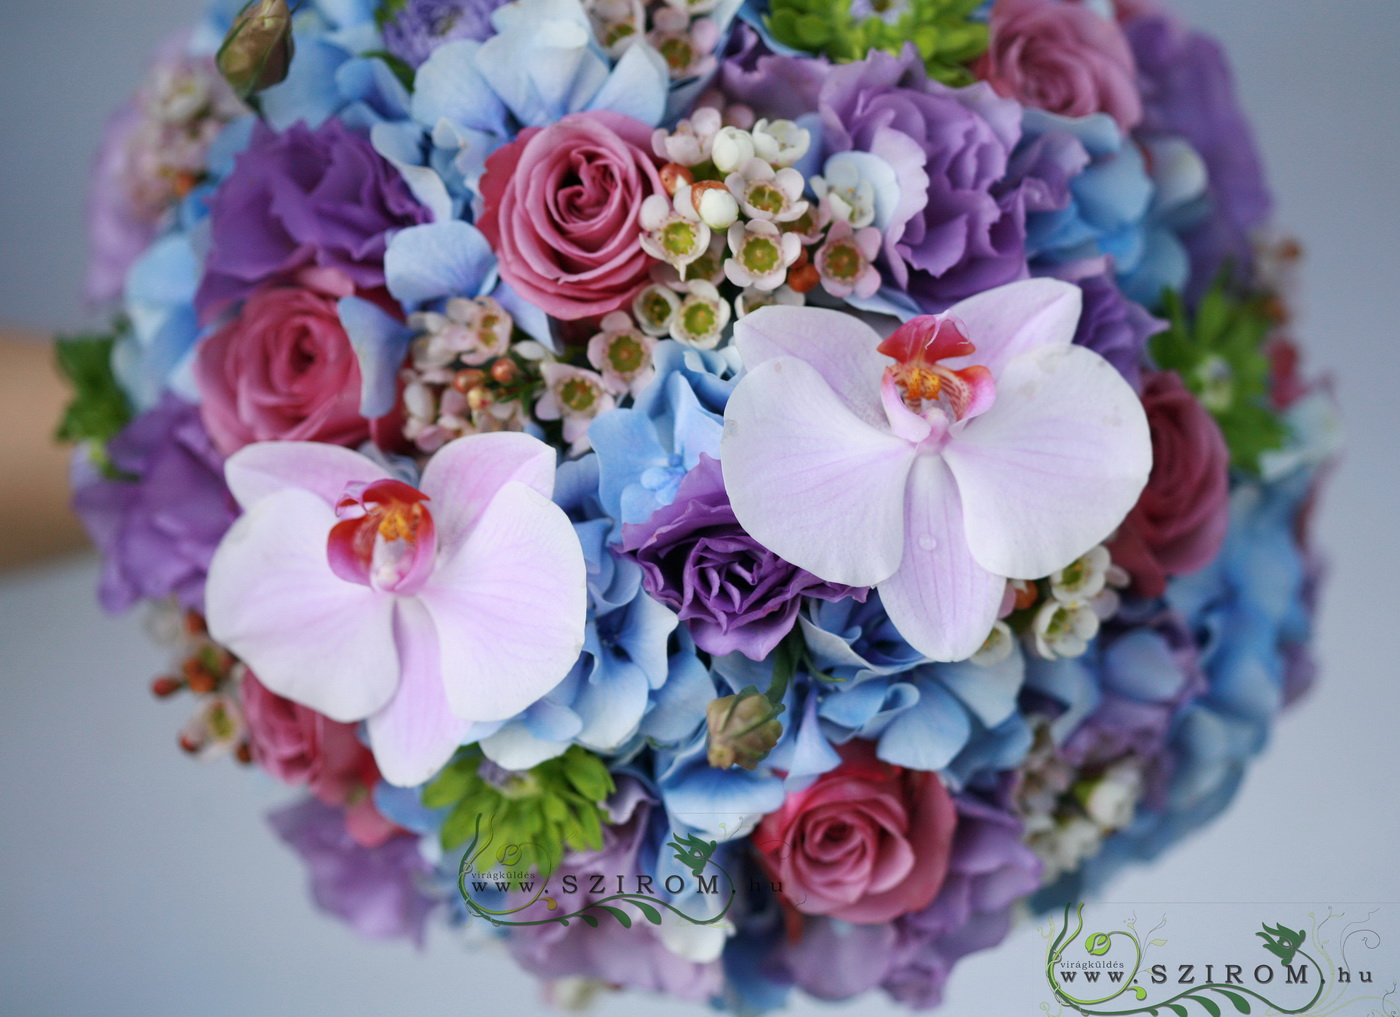 bridal bouquet (hortensia, lisianthus, rose, wax, phalaenopsis)Blue, pink